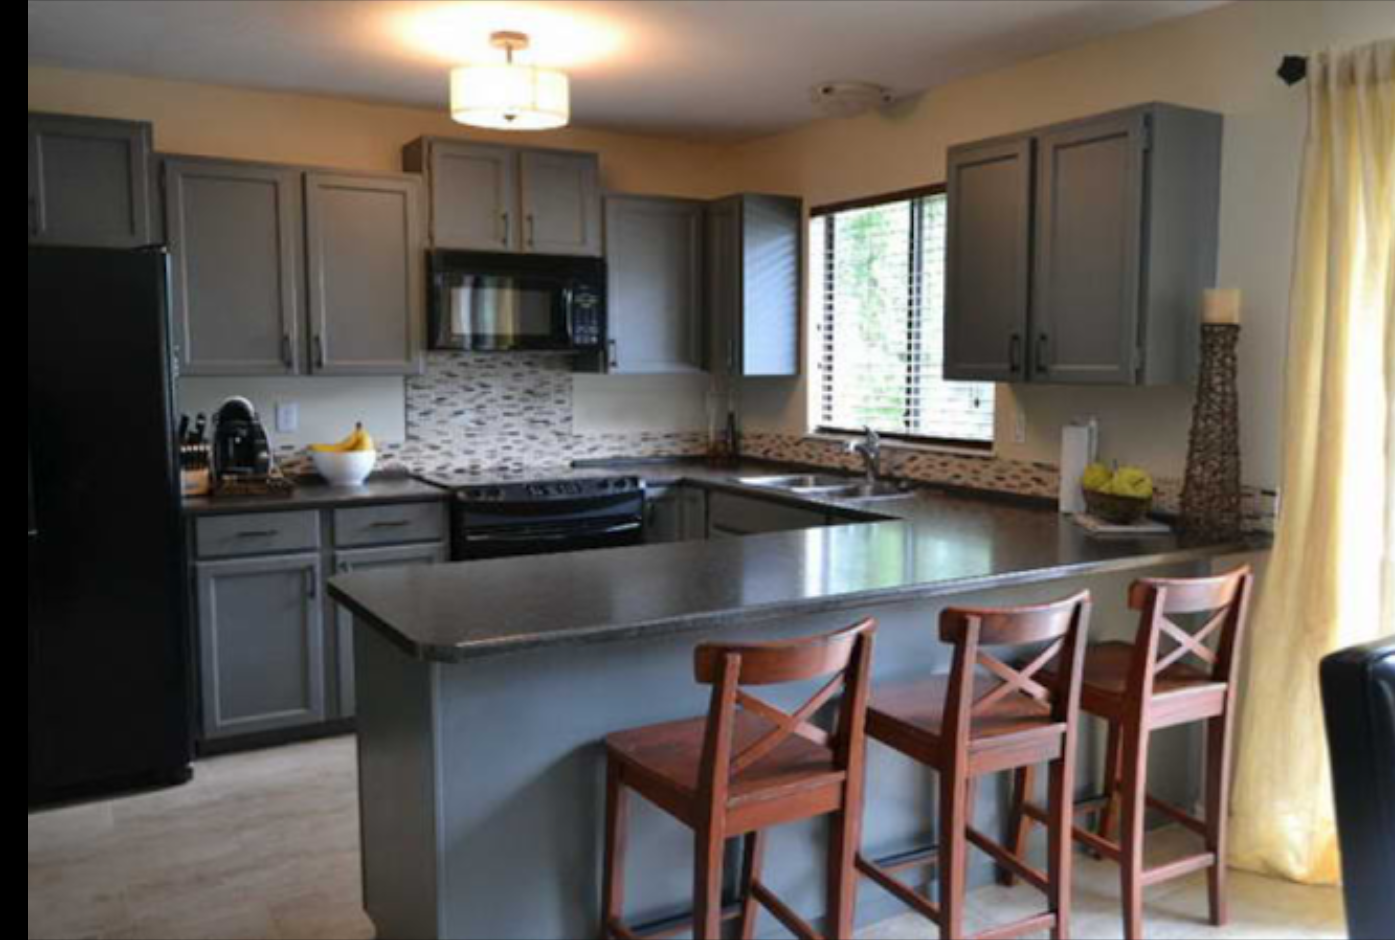 Cabinet Painting Denver - Painting Kitchen Cabinets and ...